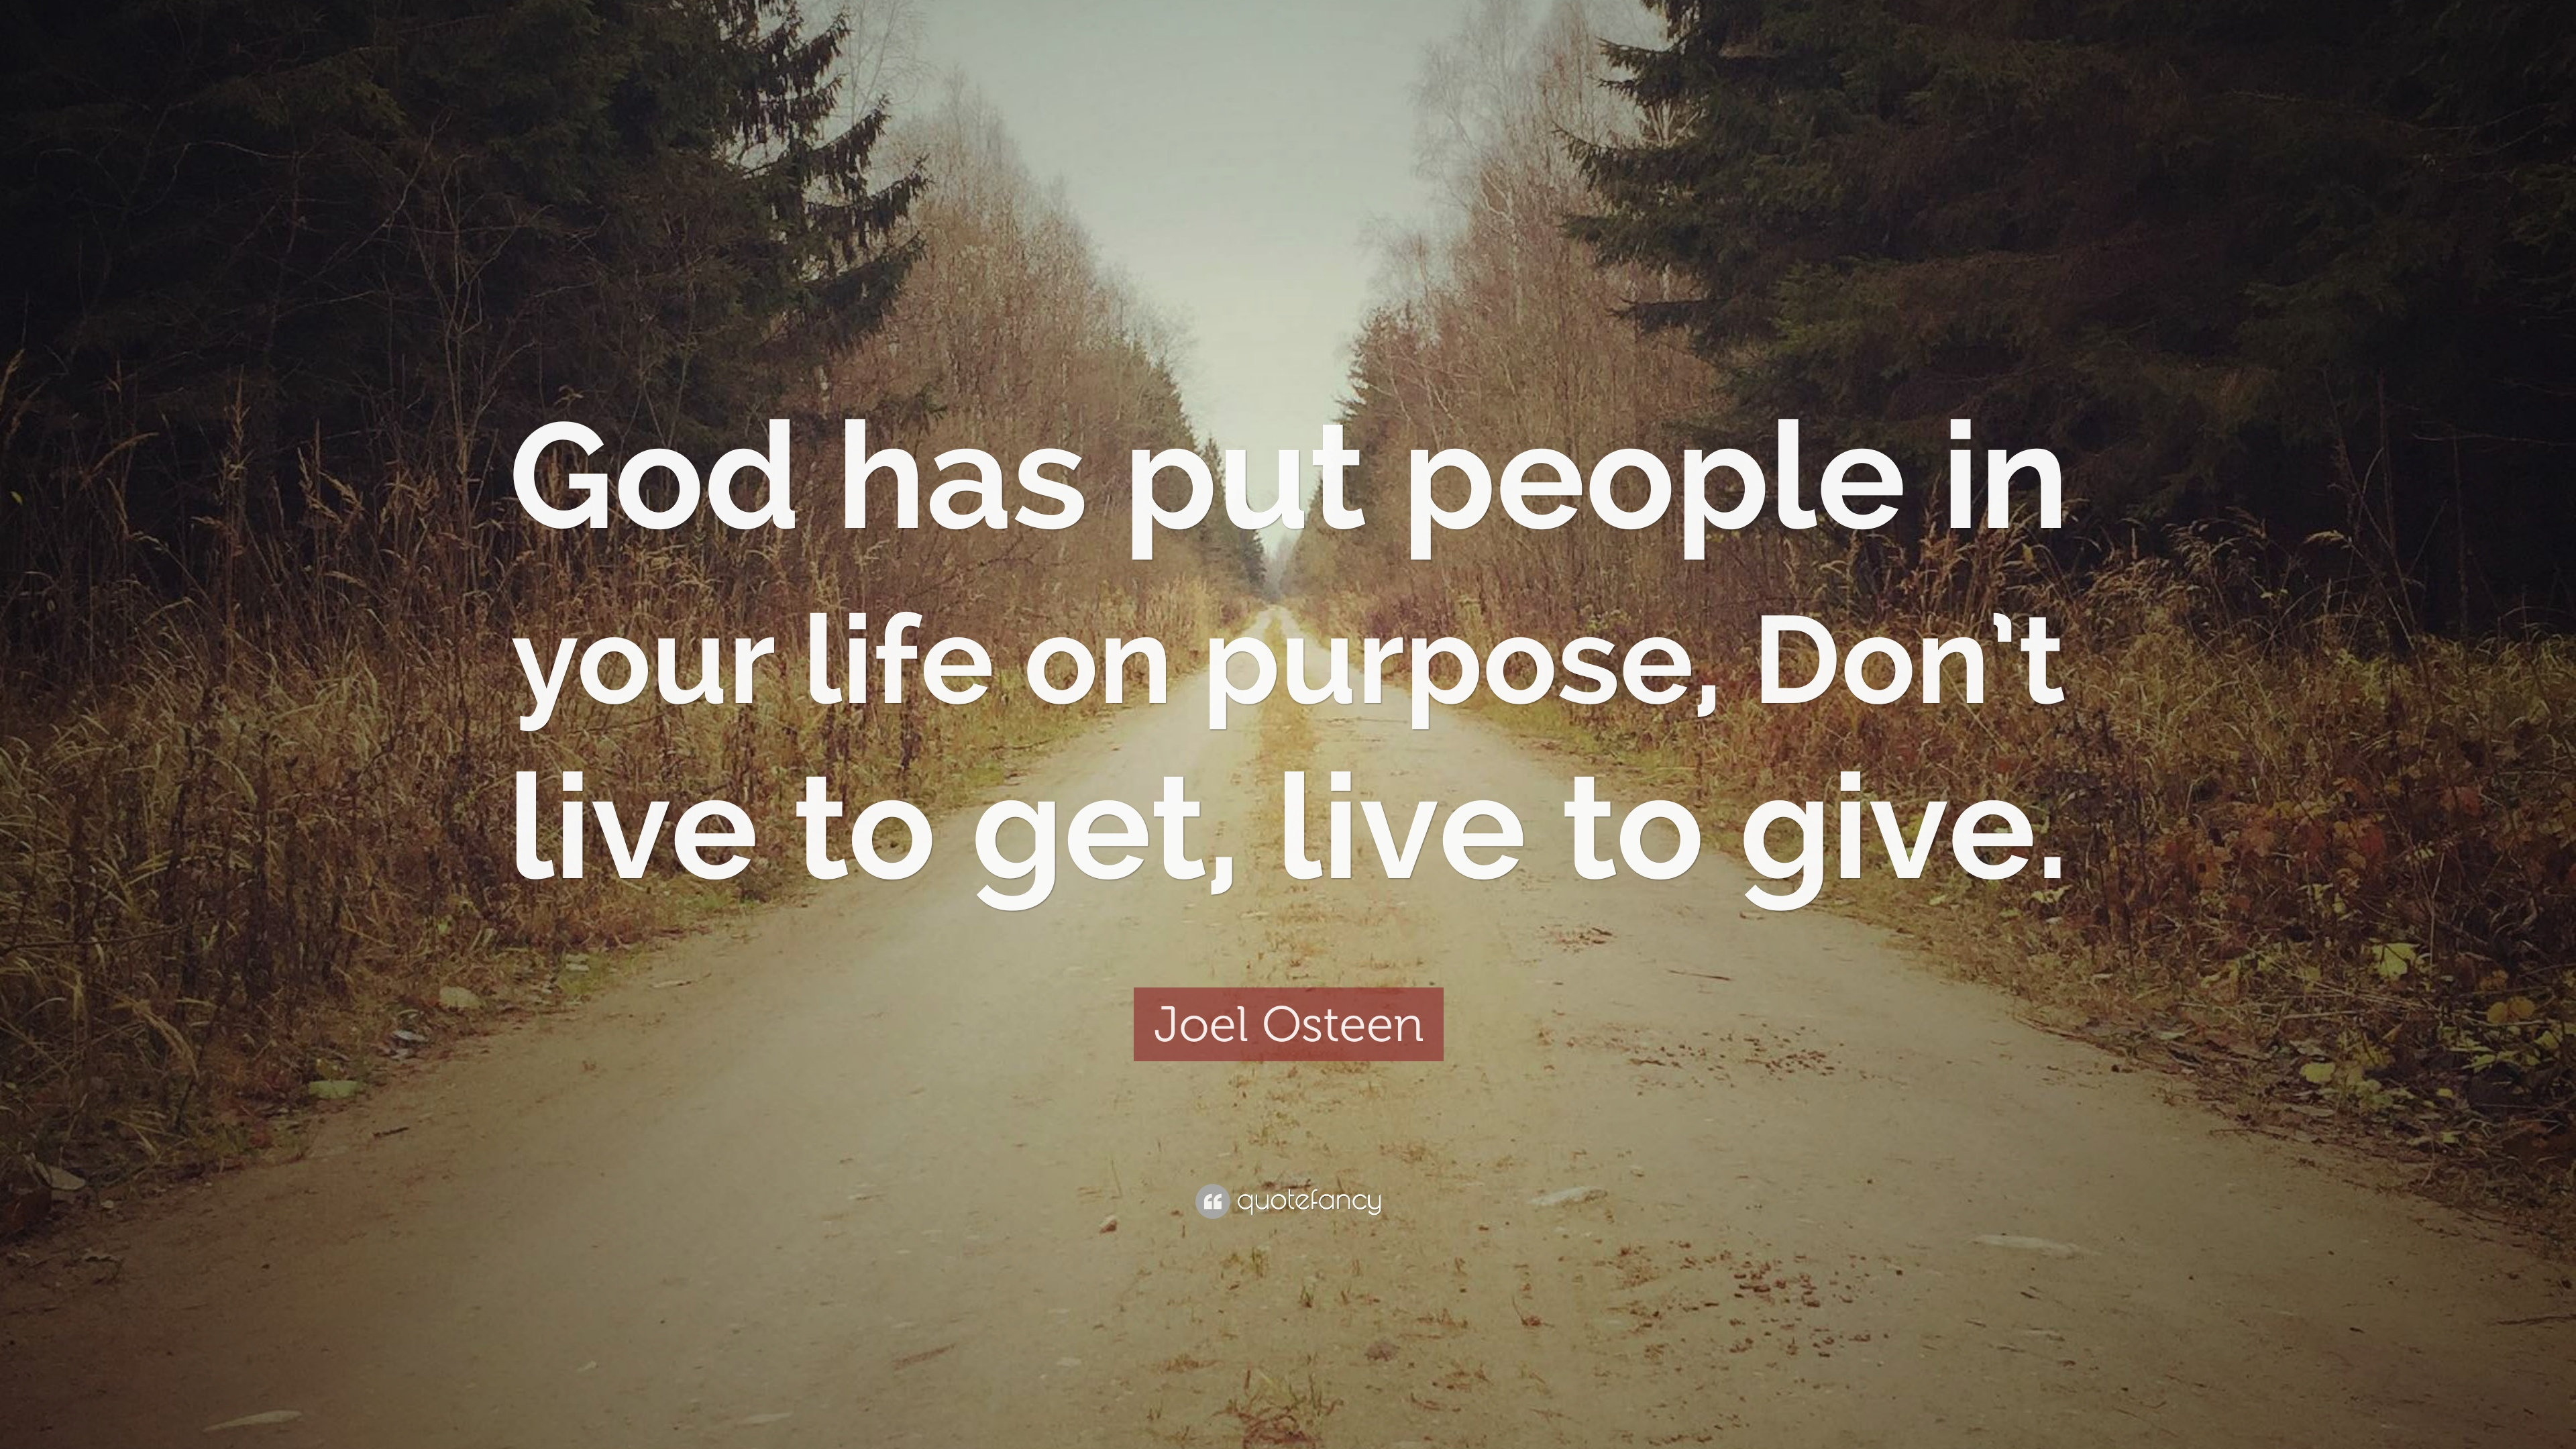 Joel Osteen Quote: God has put people in your life on